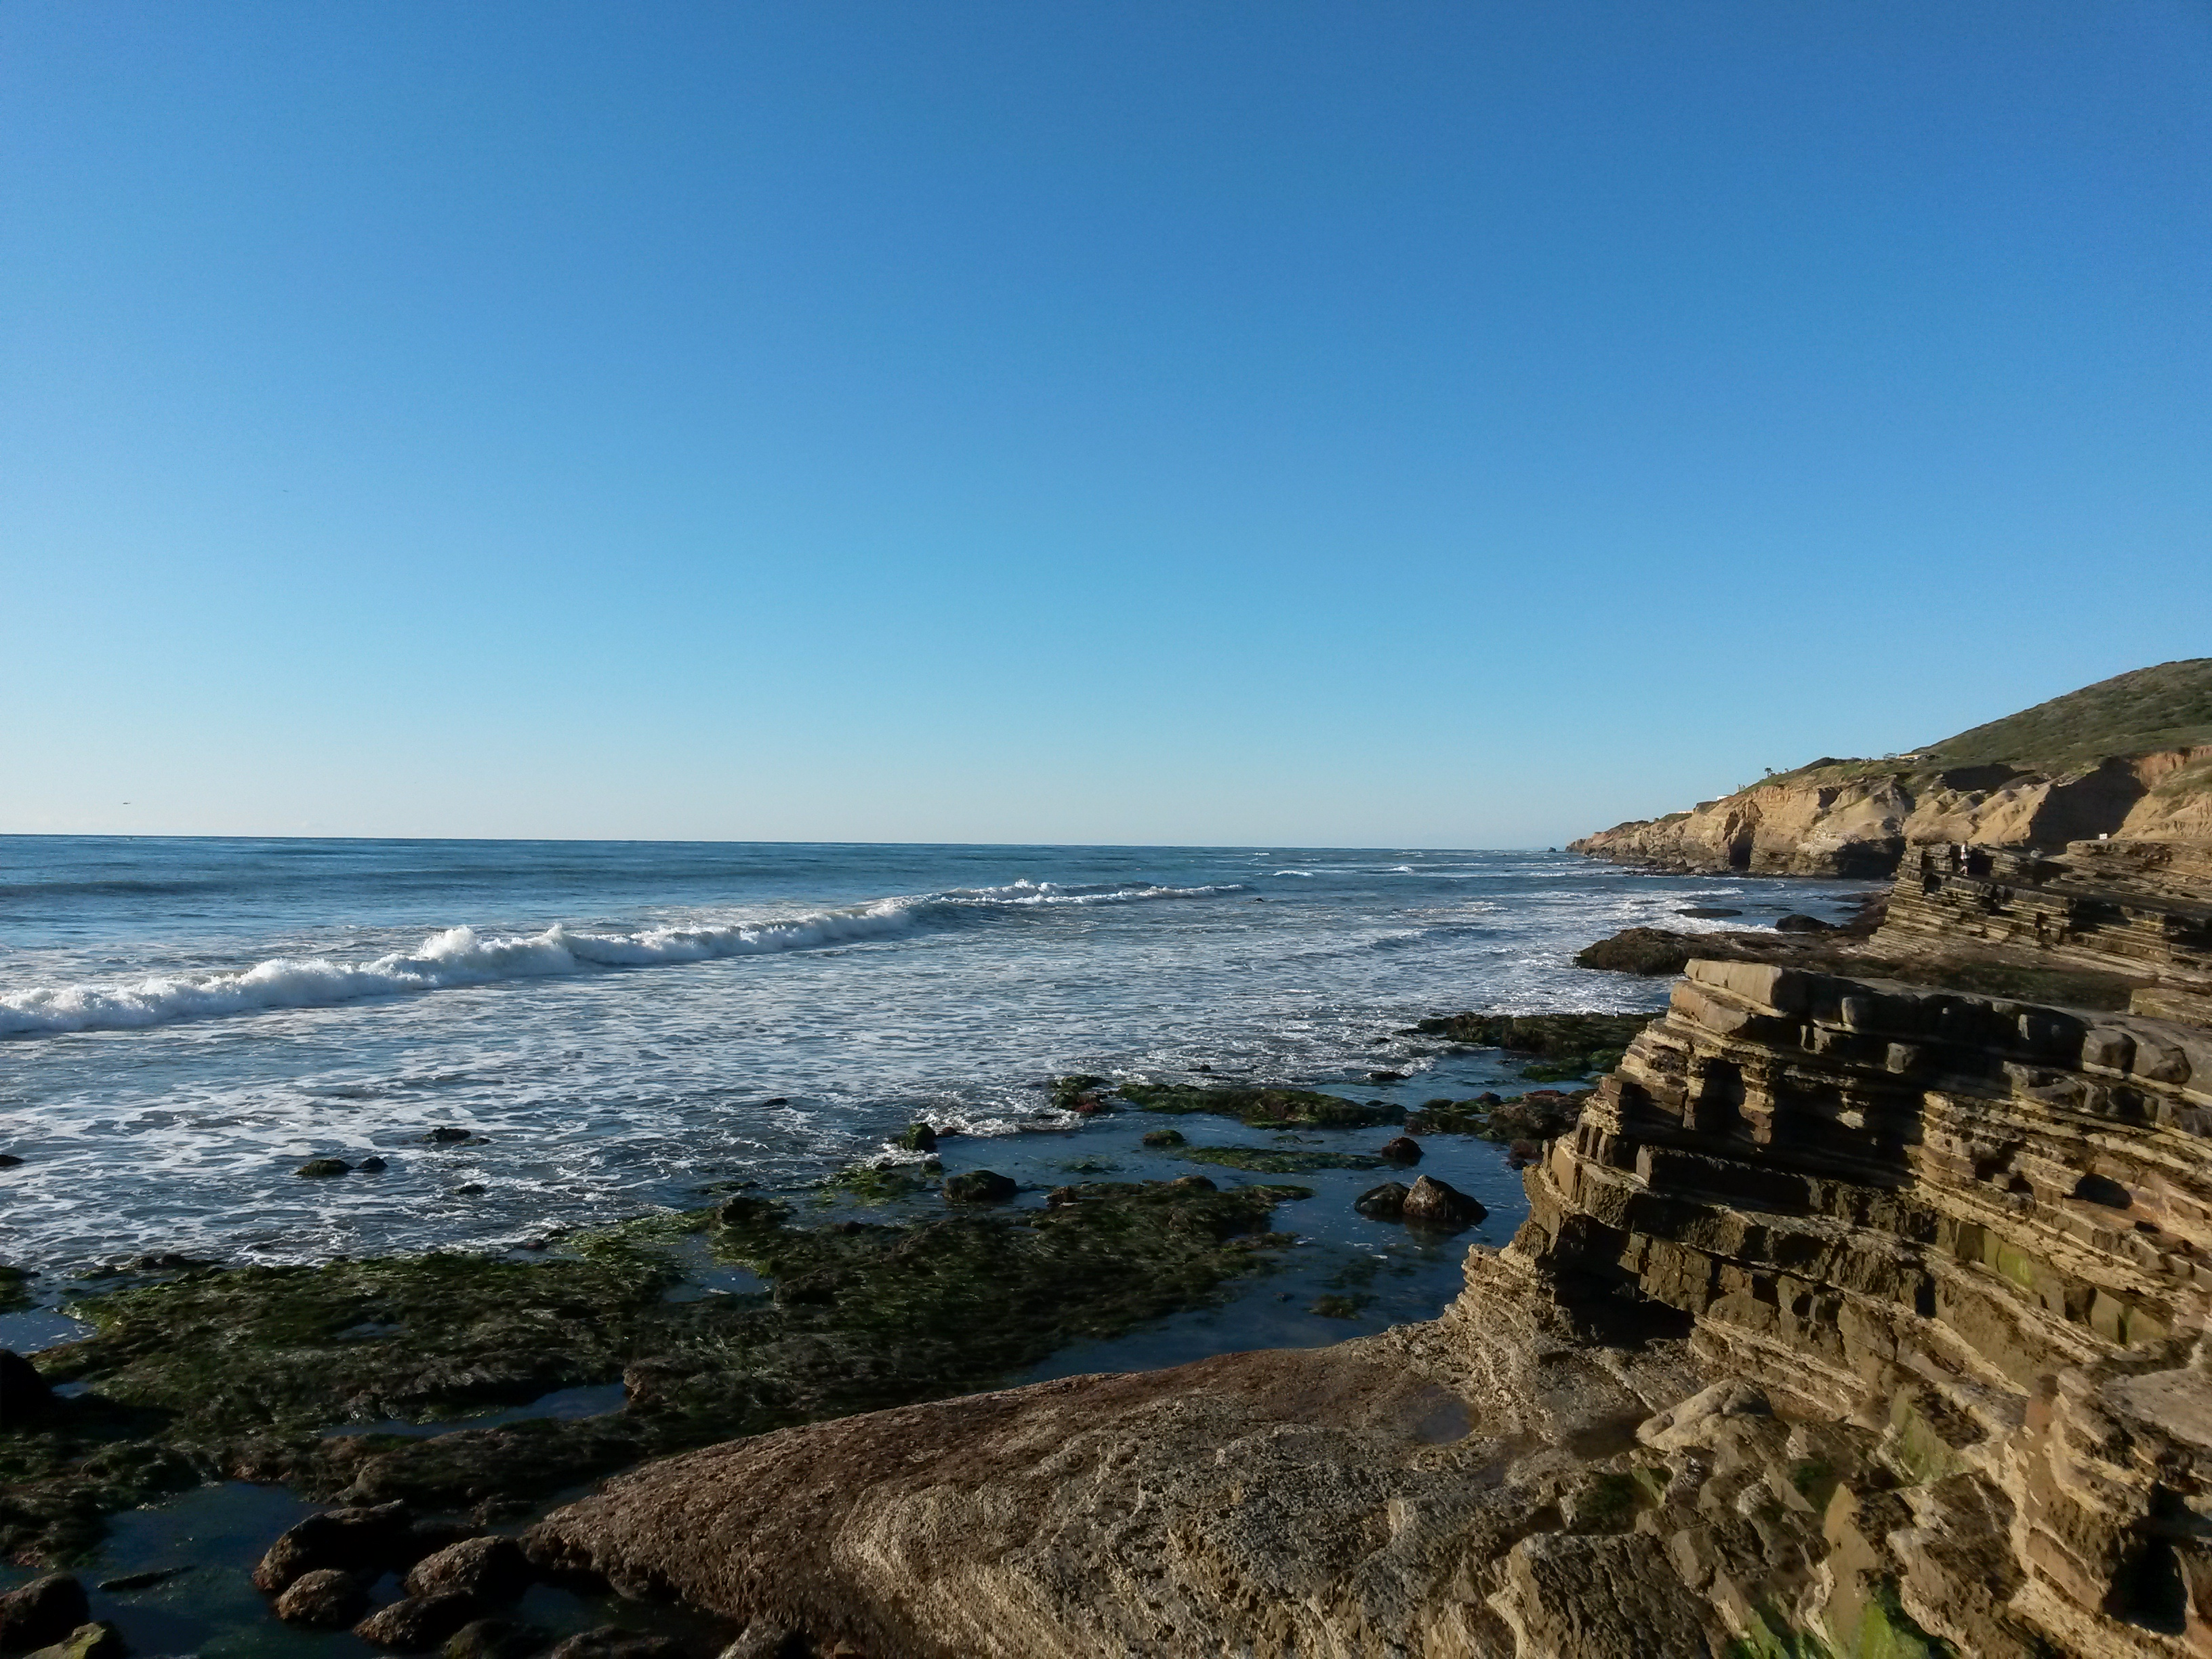 Tide pools at Cabrillo National Monument